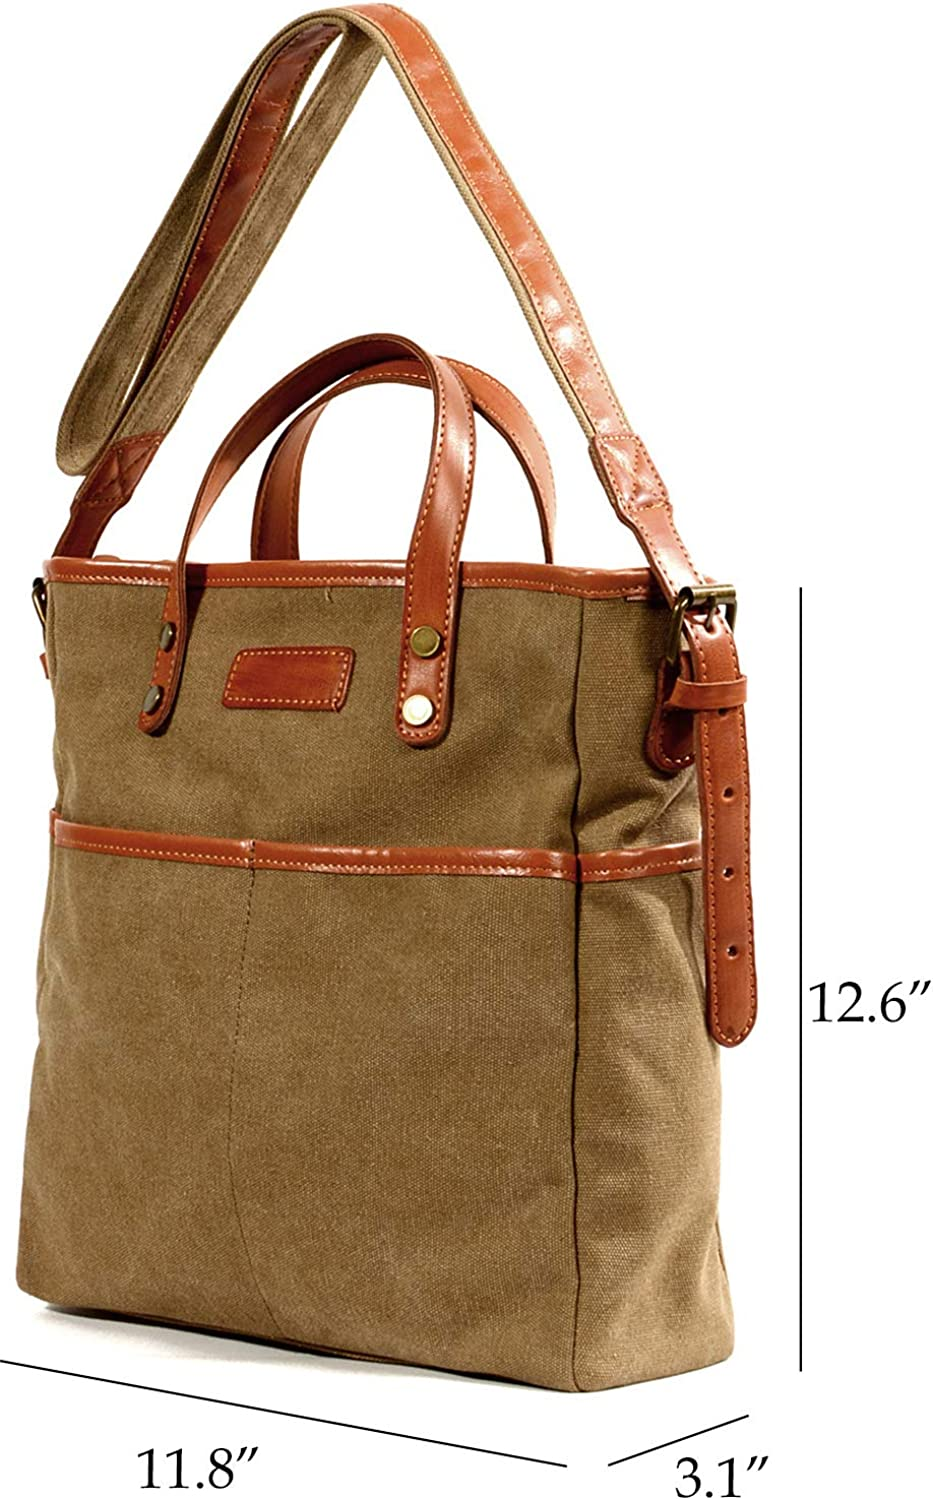 D1088 IBLUE Vintage Tote Bag Canvas Leather Trim Shoulder Handbag Top Handle Crossbody Purse